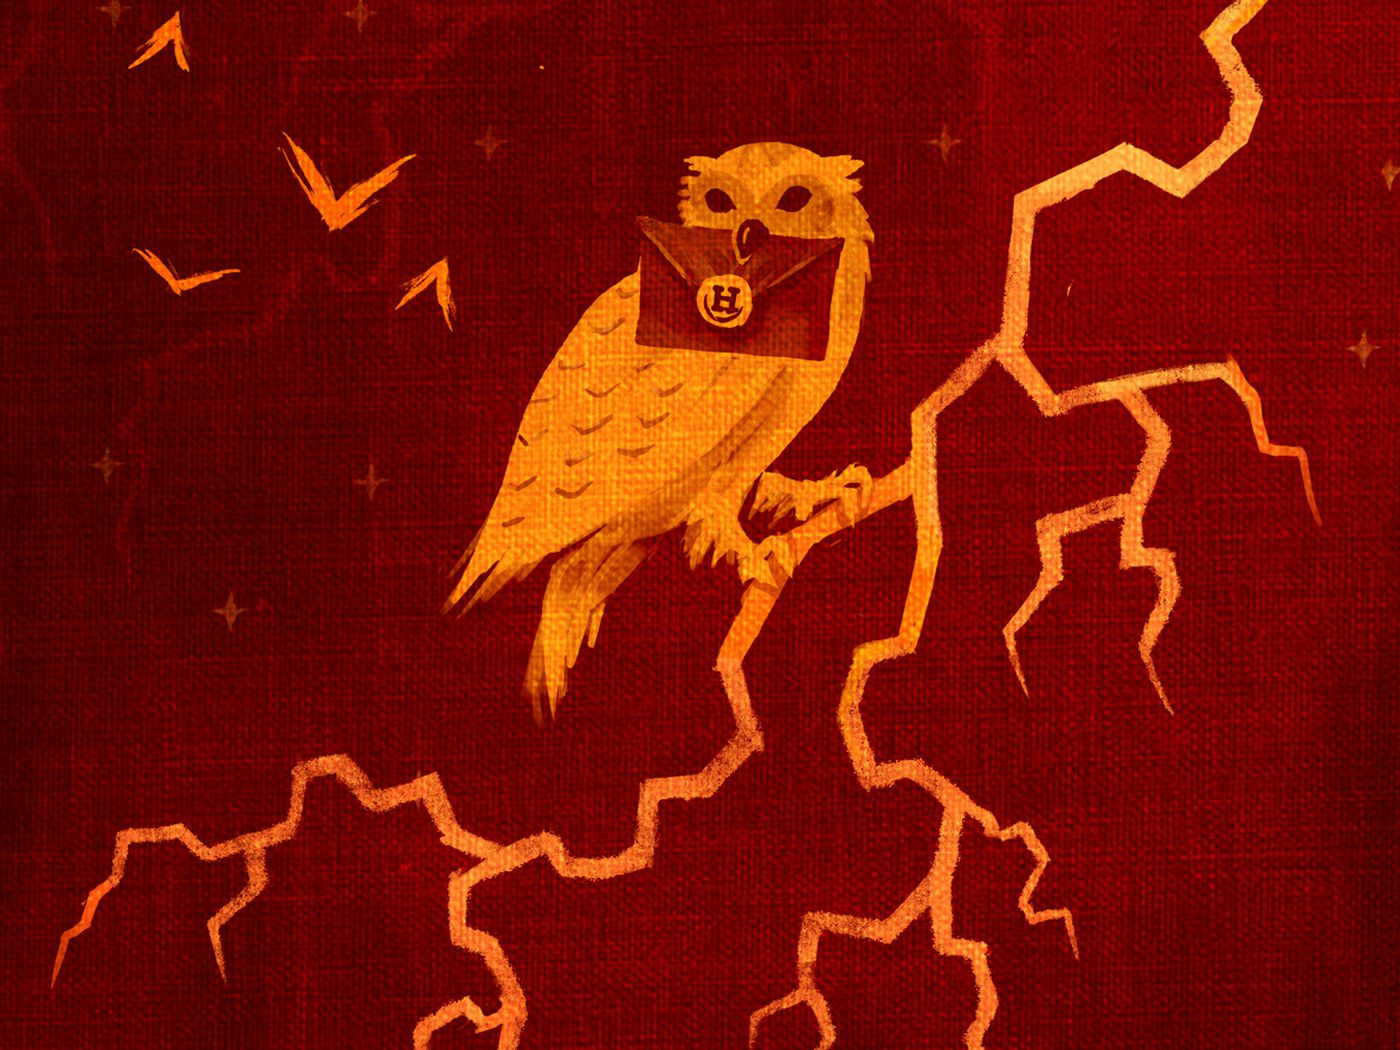 Harry Potter E Books Get Gorgeous New Covers Designed By Olly Moss Polygon